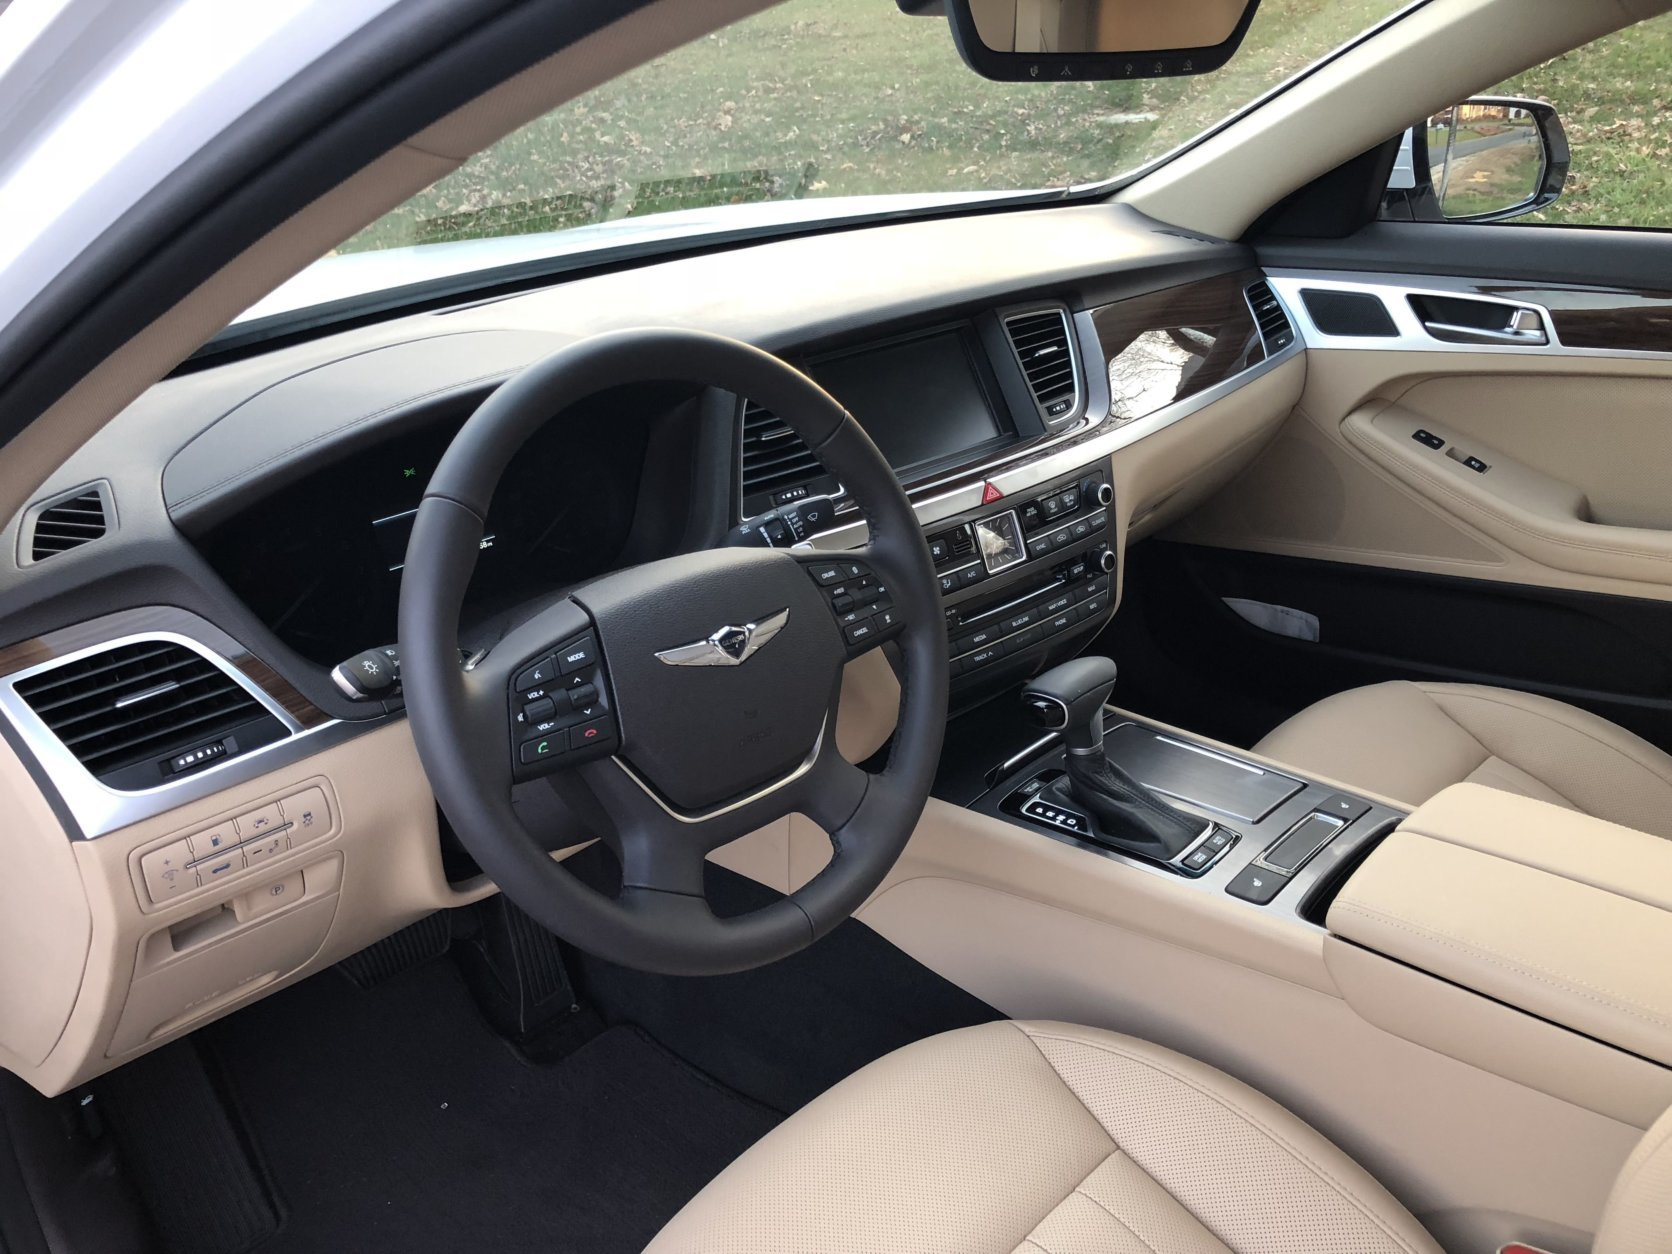 The Genesis G80 has a leather-wrapped shift knob and steering wheel. There's even a power adjustment for the tilt and telescoping. (WTOP/Mike Parris)